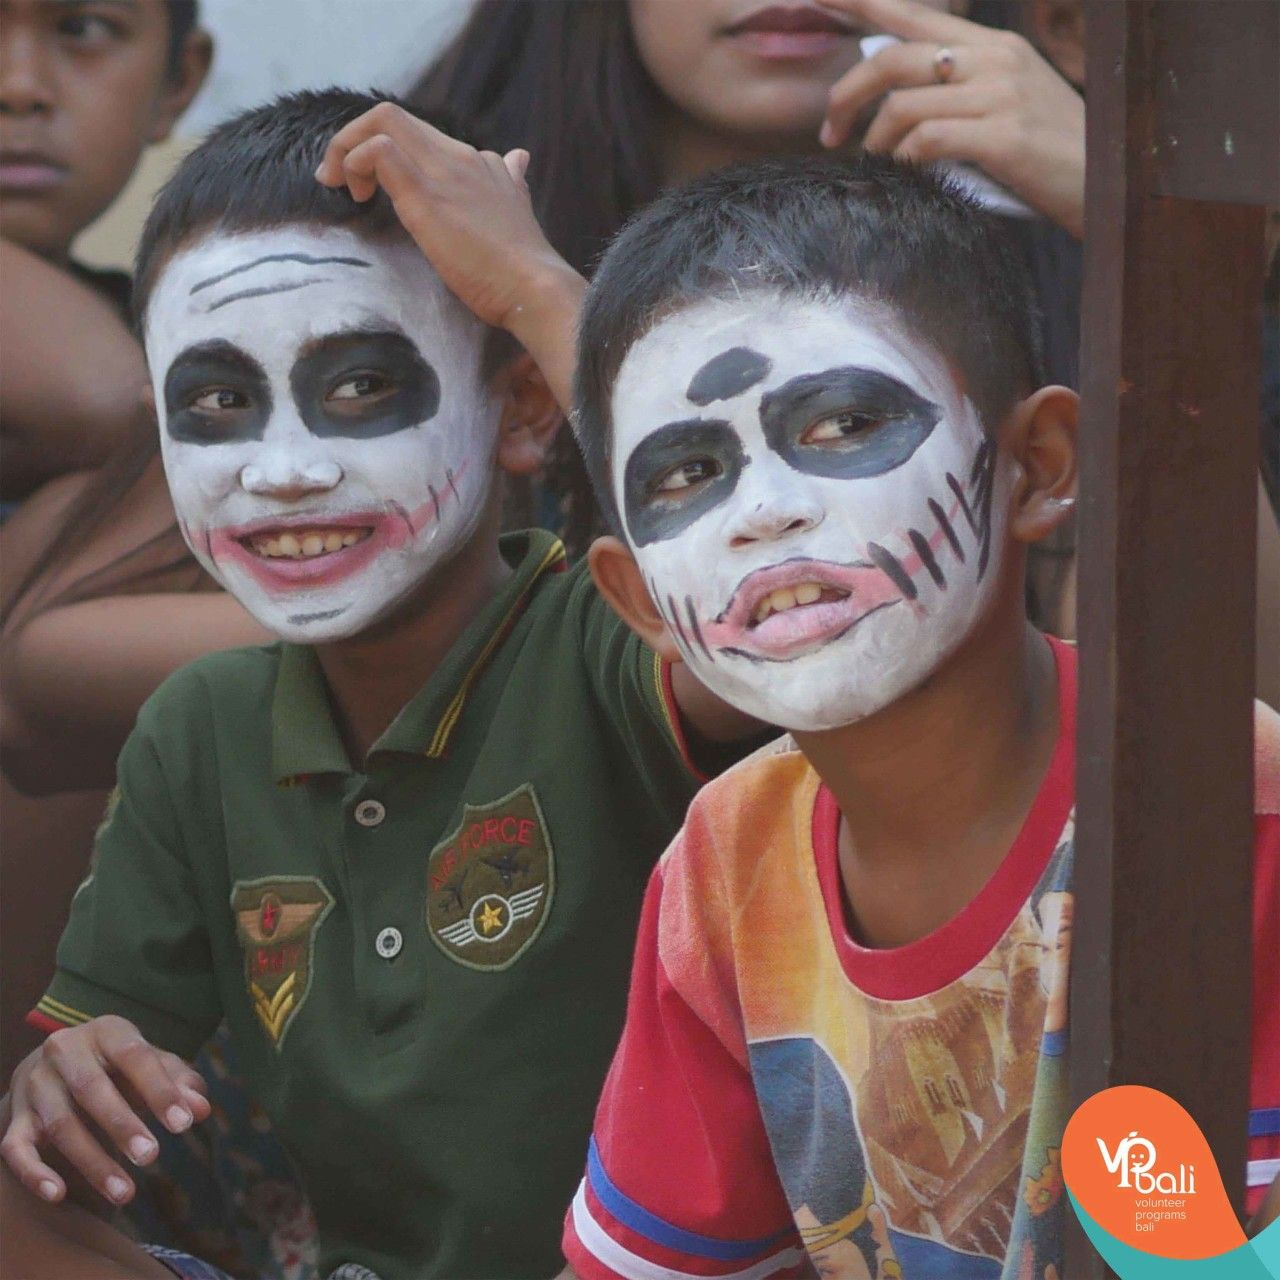 Halloween in Bali! Even though this is not a tradition in